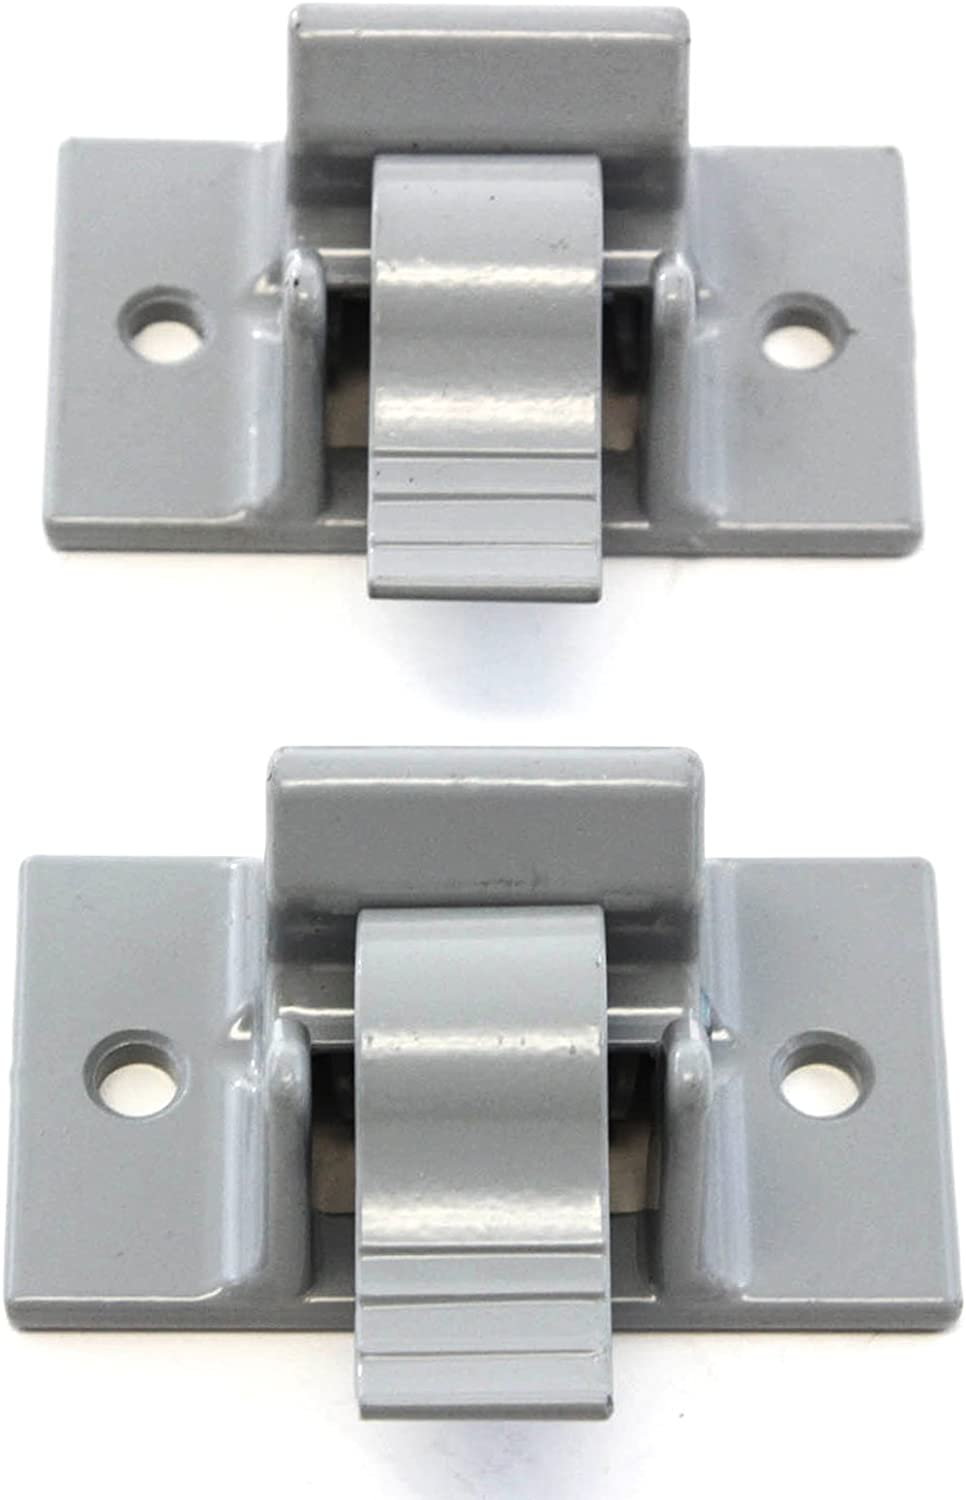 Red Hound Auto Mounting Brackets (2) Compatible with Dometic Sunchaser Lower Awning Arm Bottom Replacement Gray RV Camper Trailer